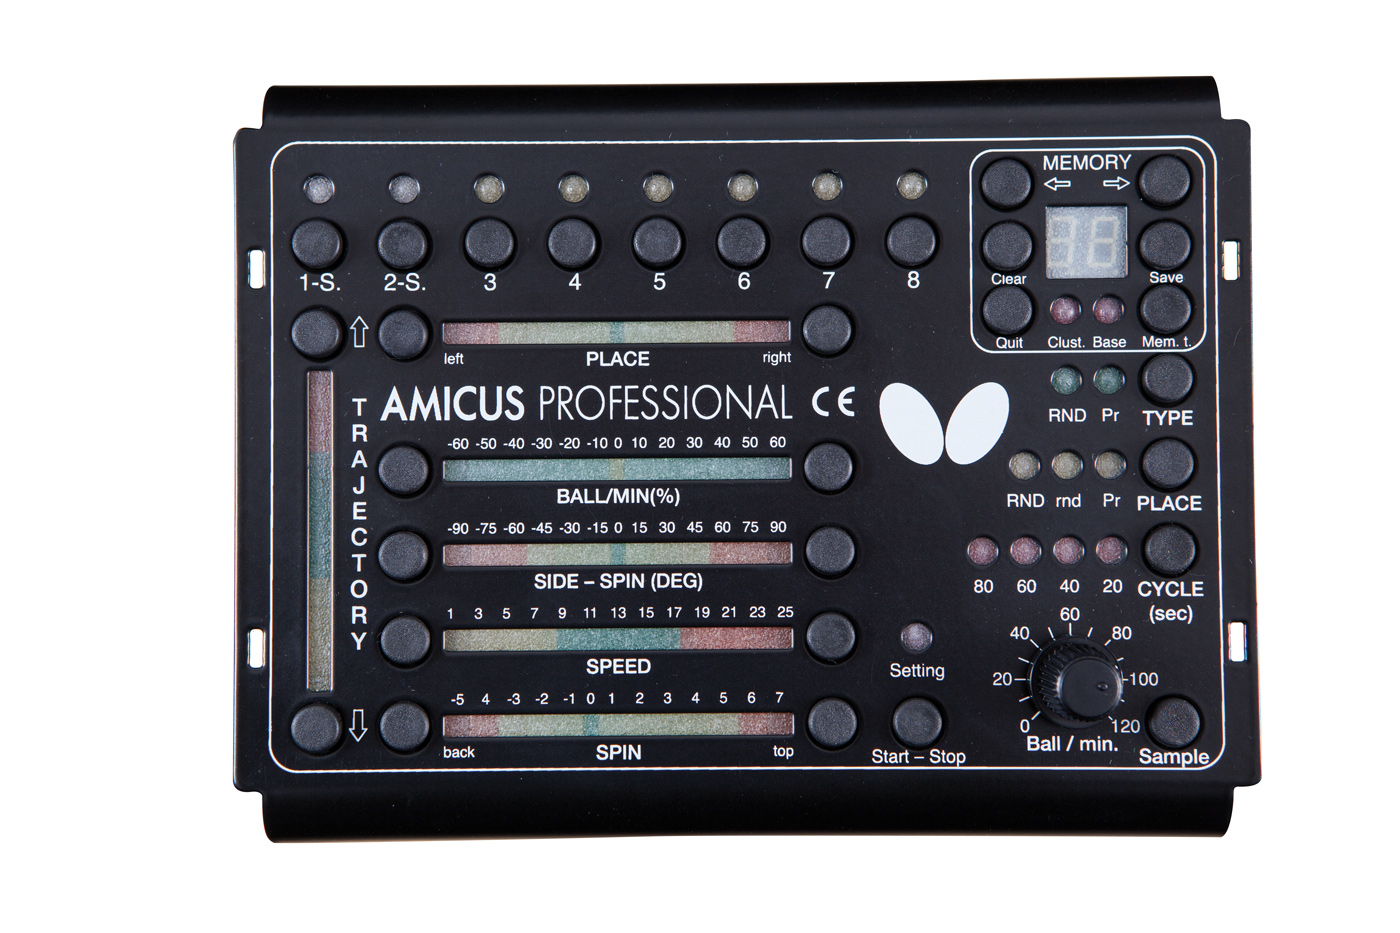 Amicus Professional table tennis robot control panel